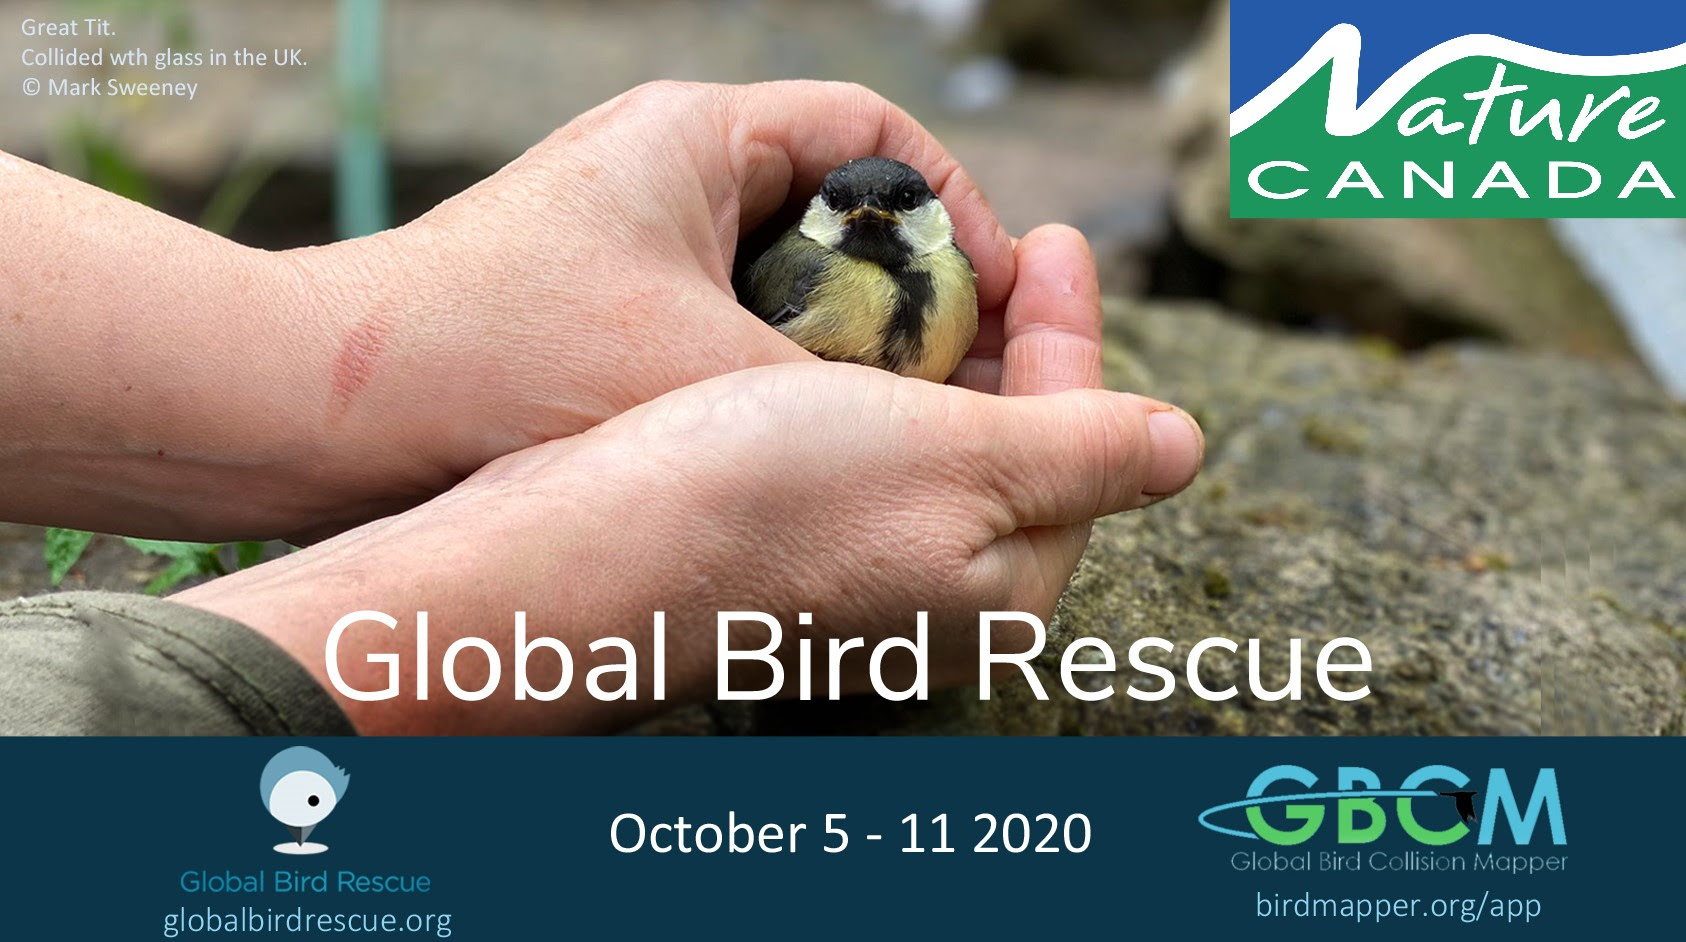 Global Bird Rescue